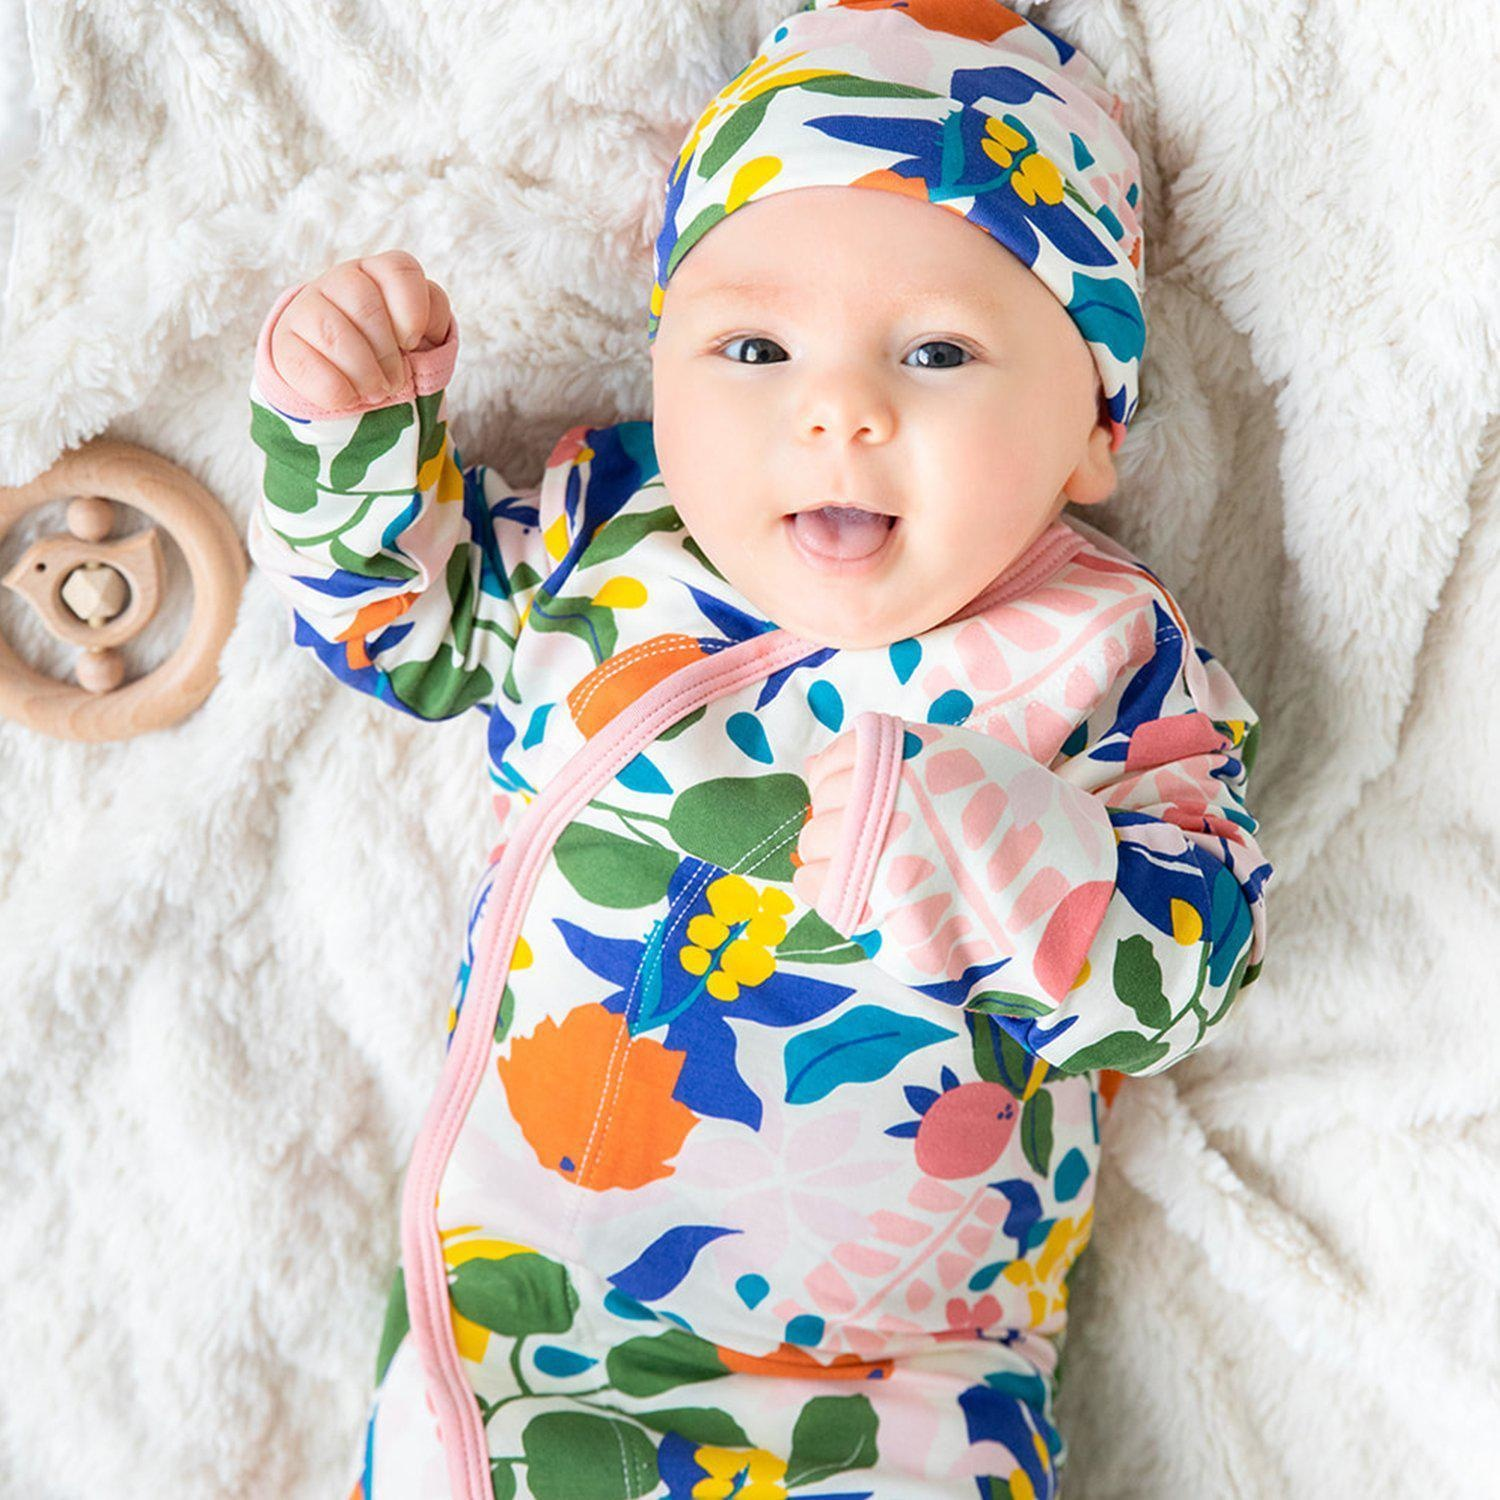 Magnetic Me Rayleigh Modal Magnetic Sack Gown & Hat Set (0-3 mo)